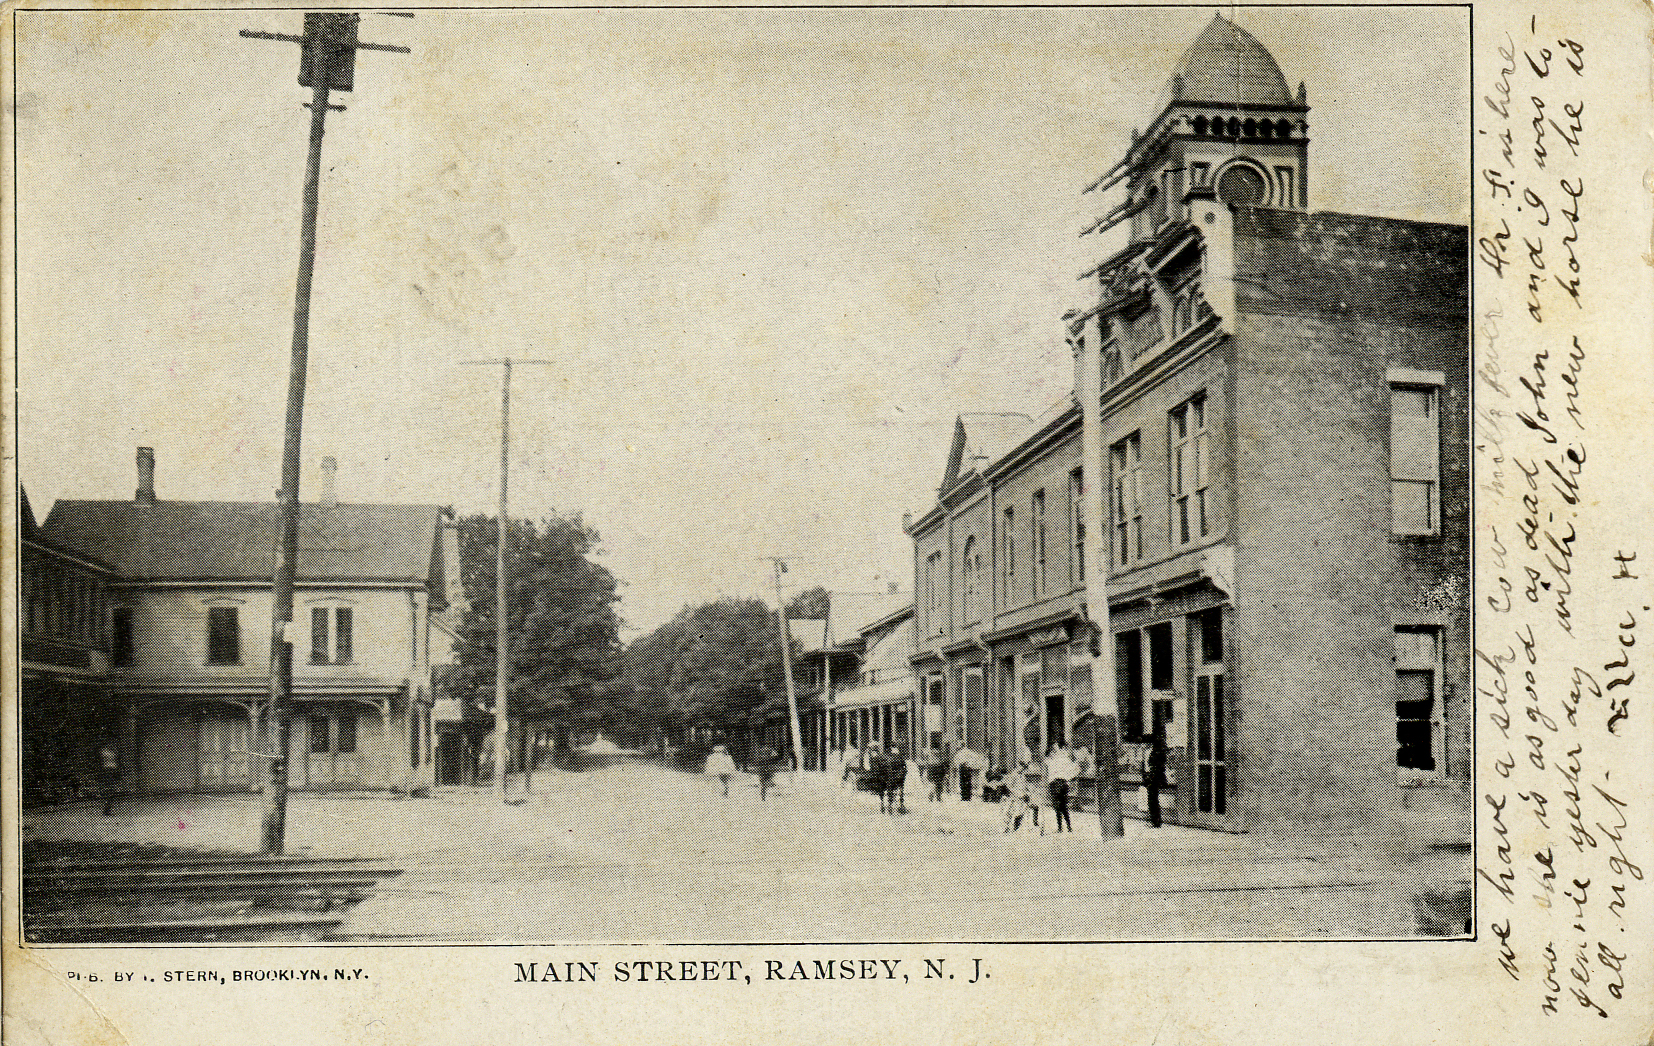 Main Street, Ramsey, NJ